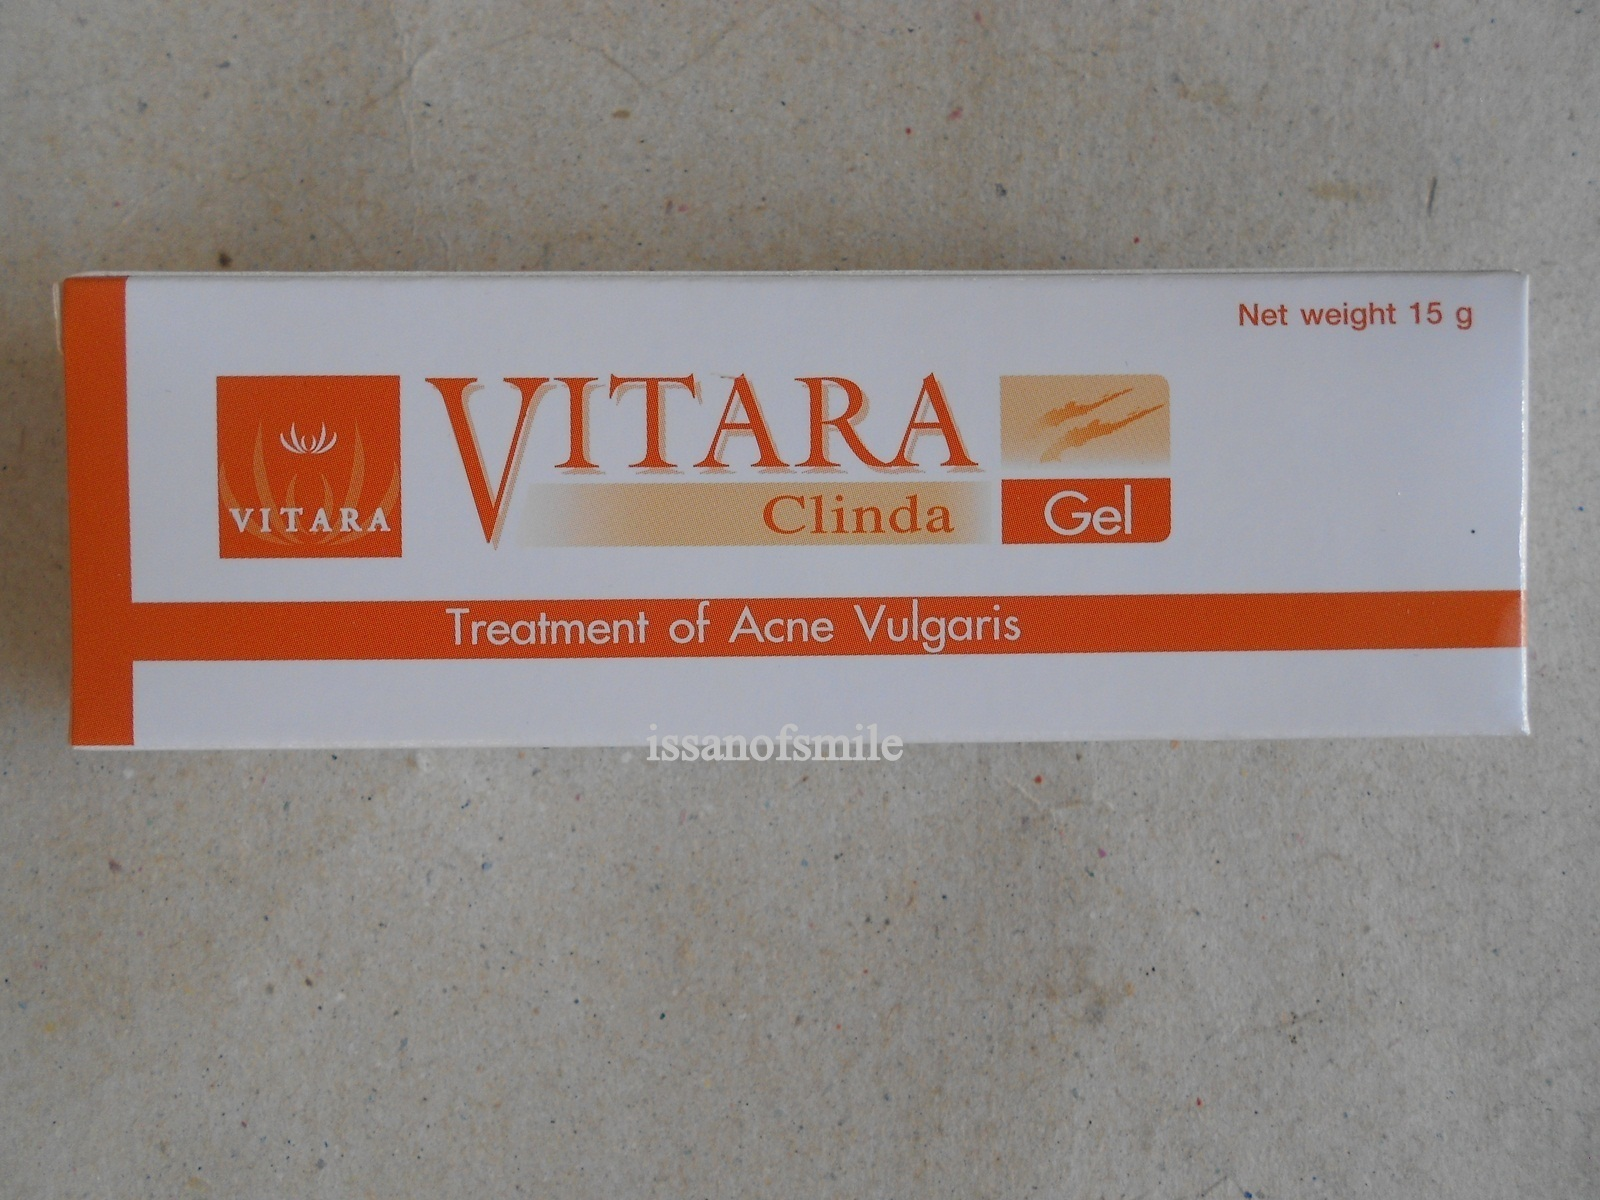 4 x 15g. Vitara Clinda Gel Treatment Anti Inflammatory Acne Vulgaris Pimple